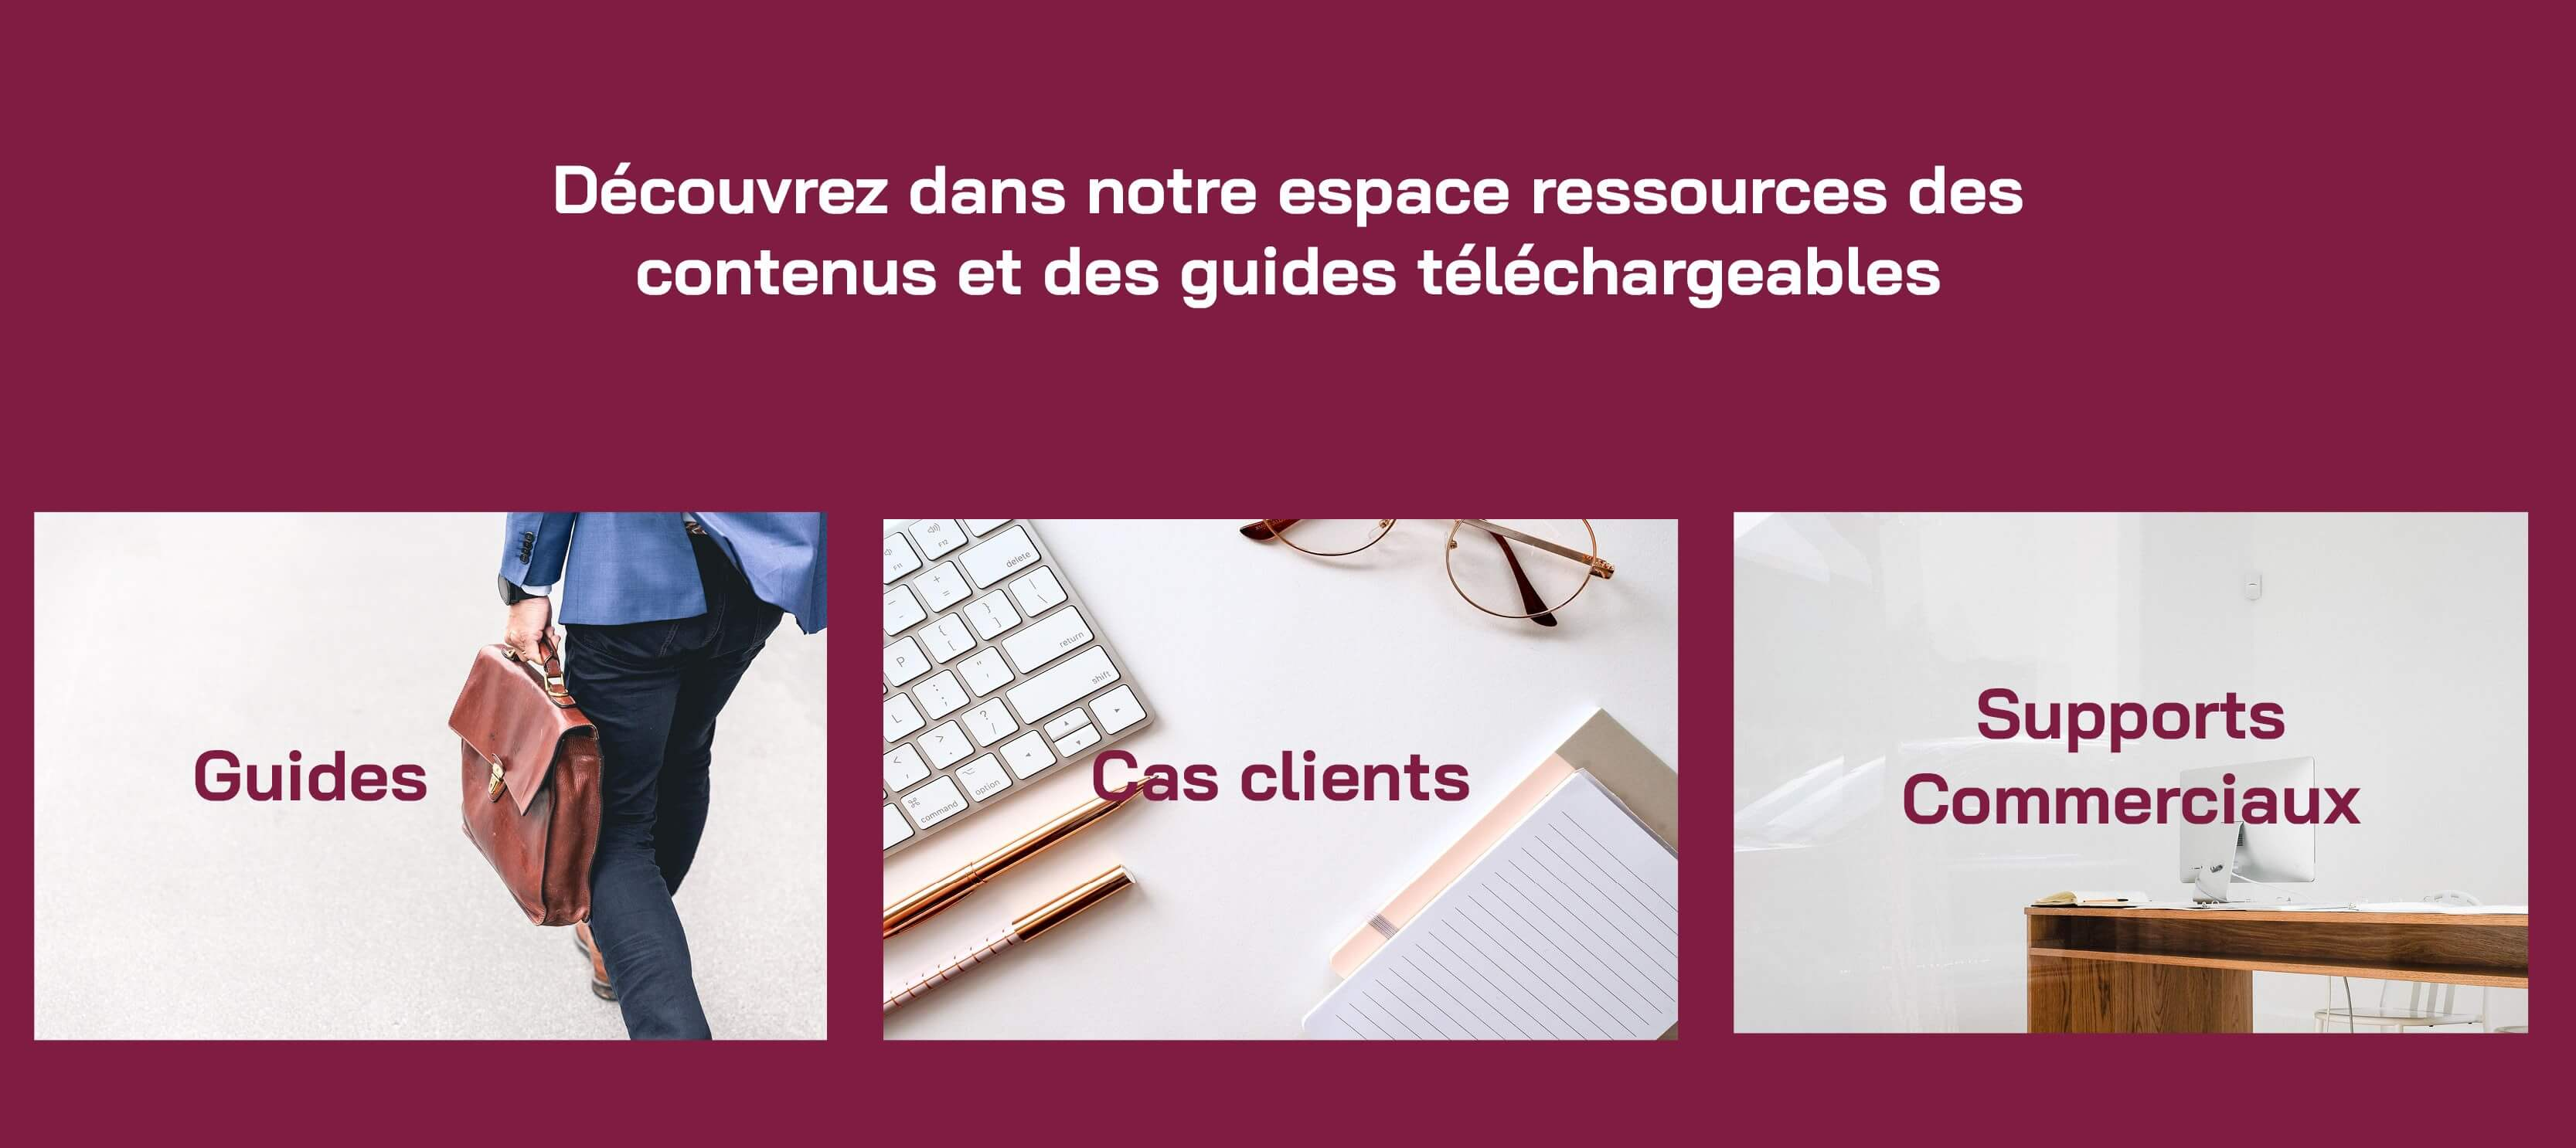 ressources-guides-supports-commerciaux